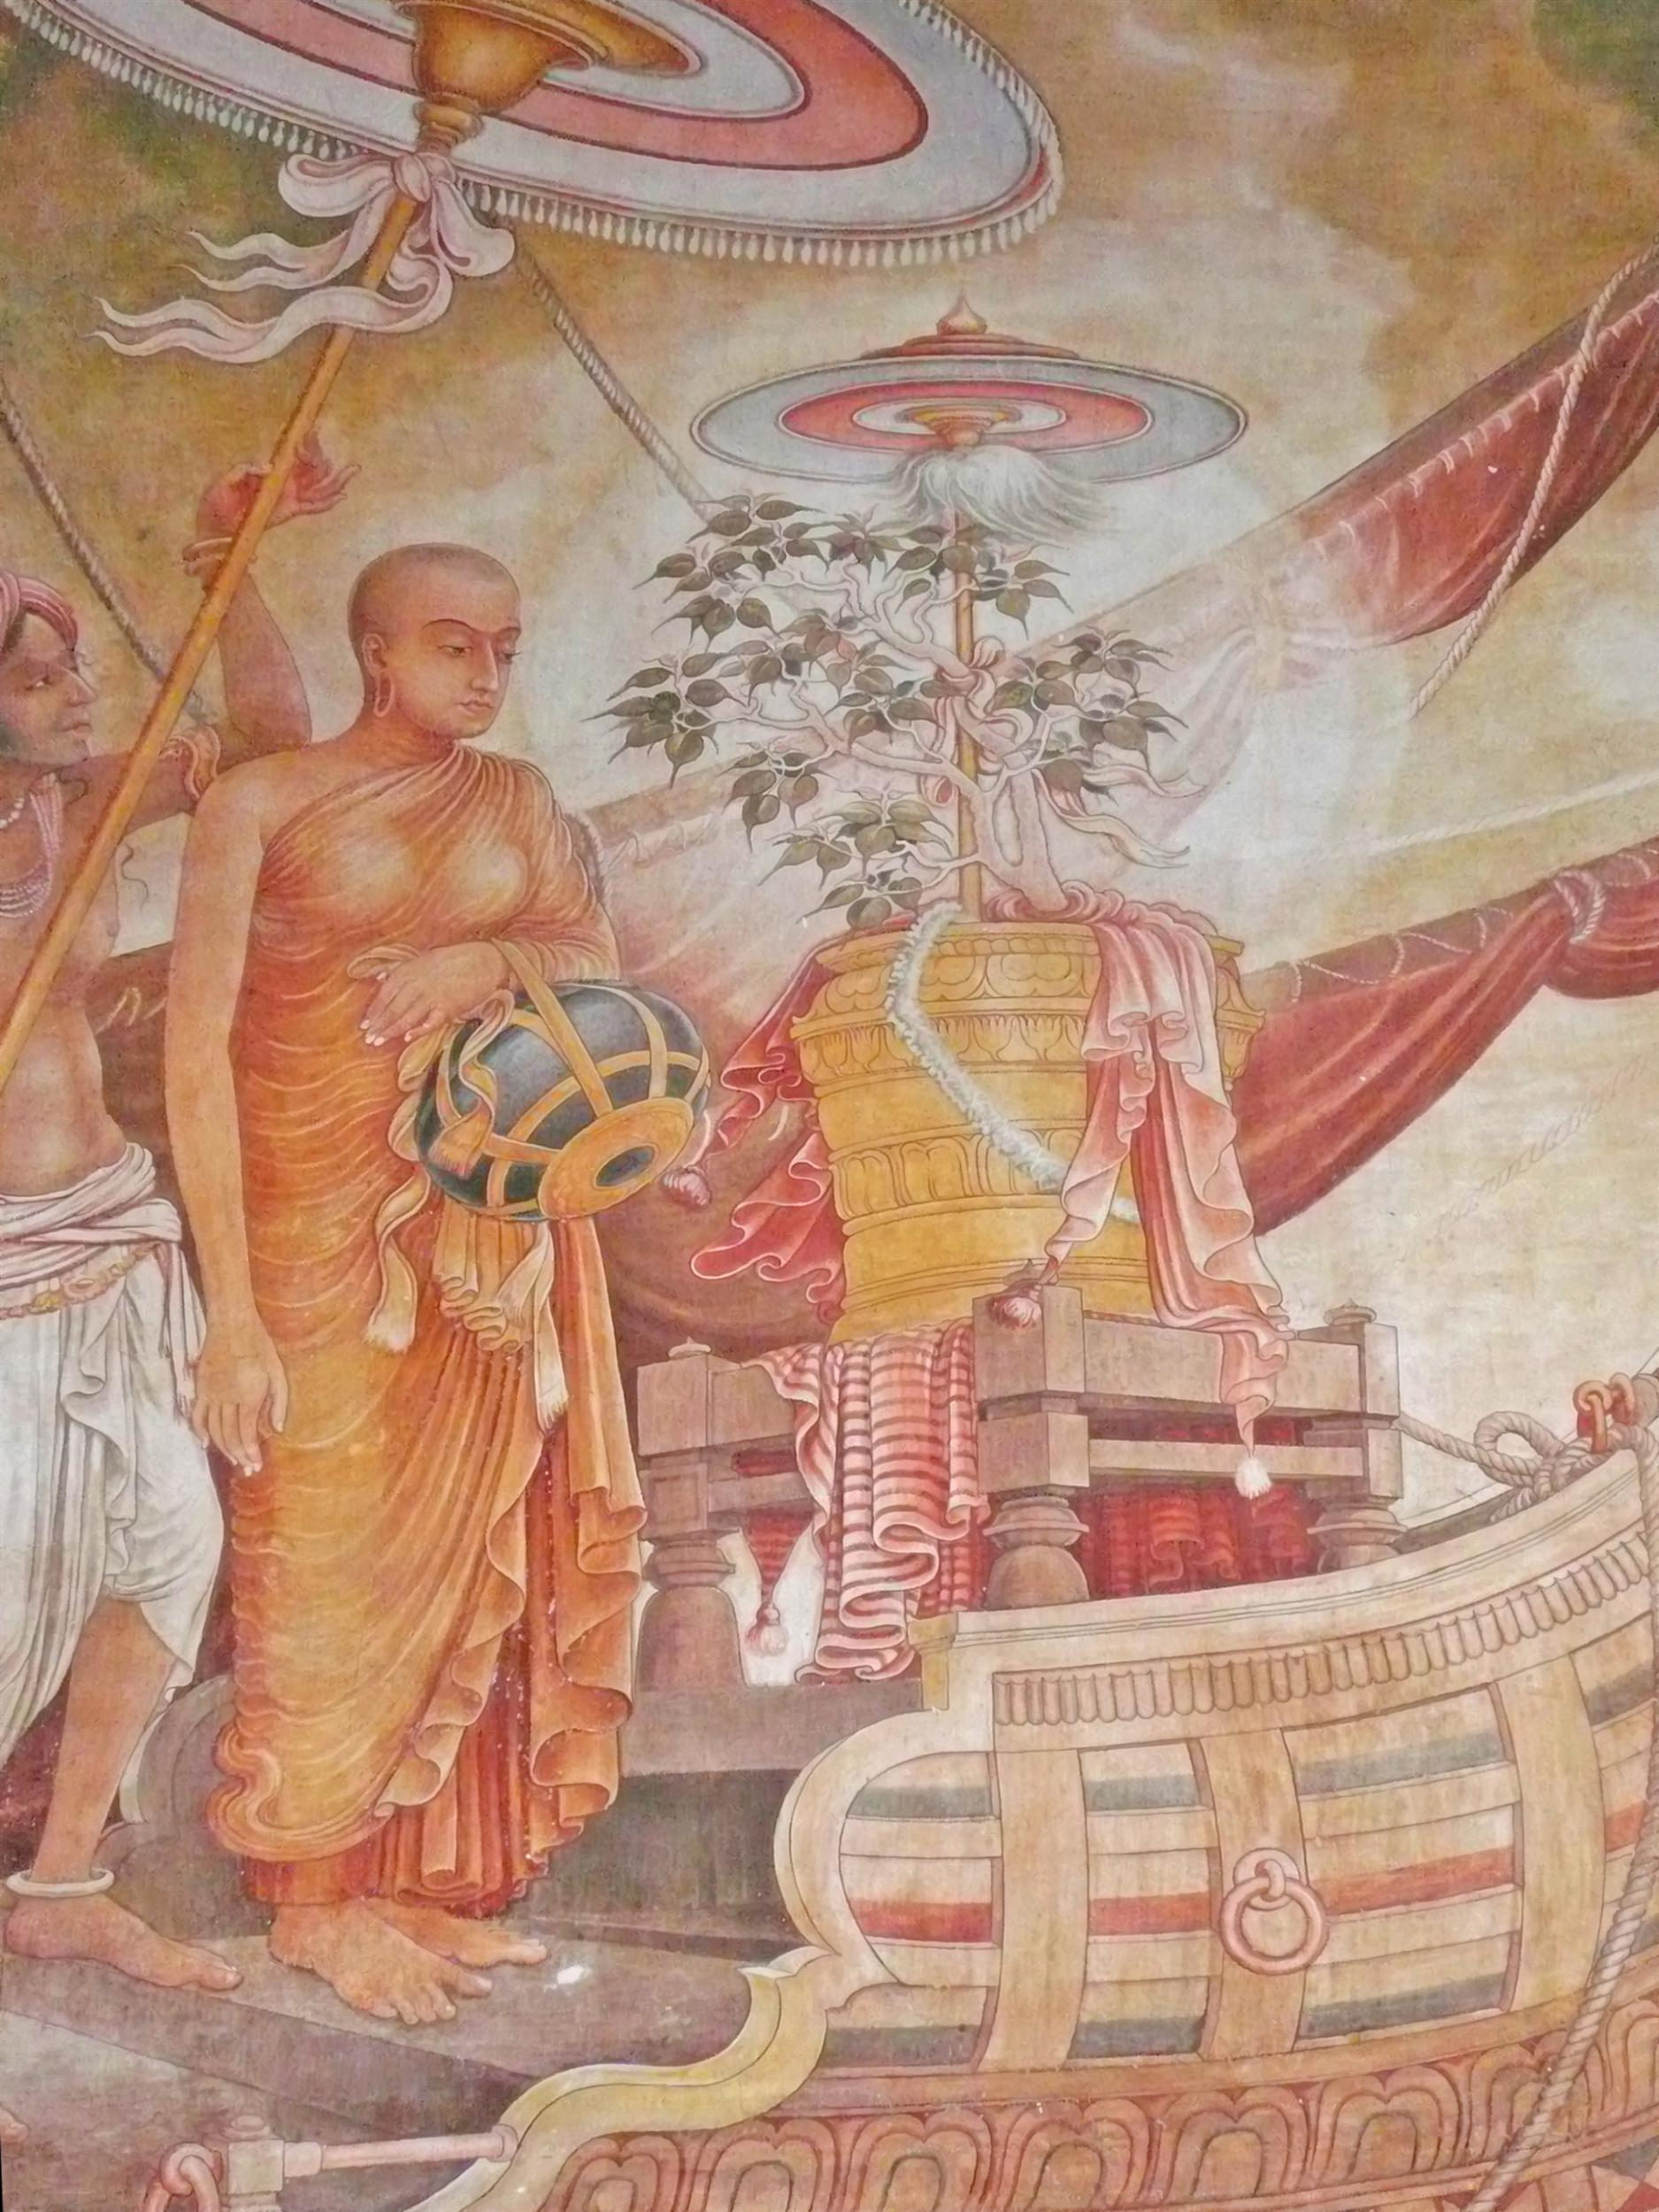 An artist's impression of Theri Sanghamitta arriving in Sri Lanka with the Bodhi